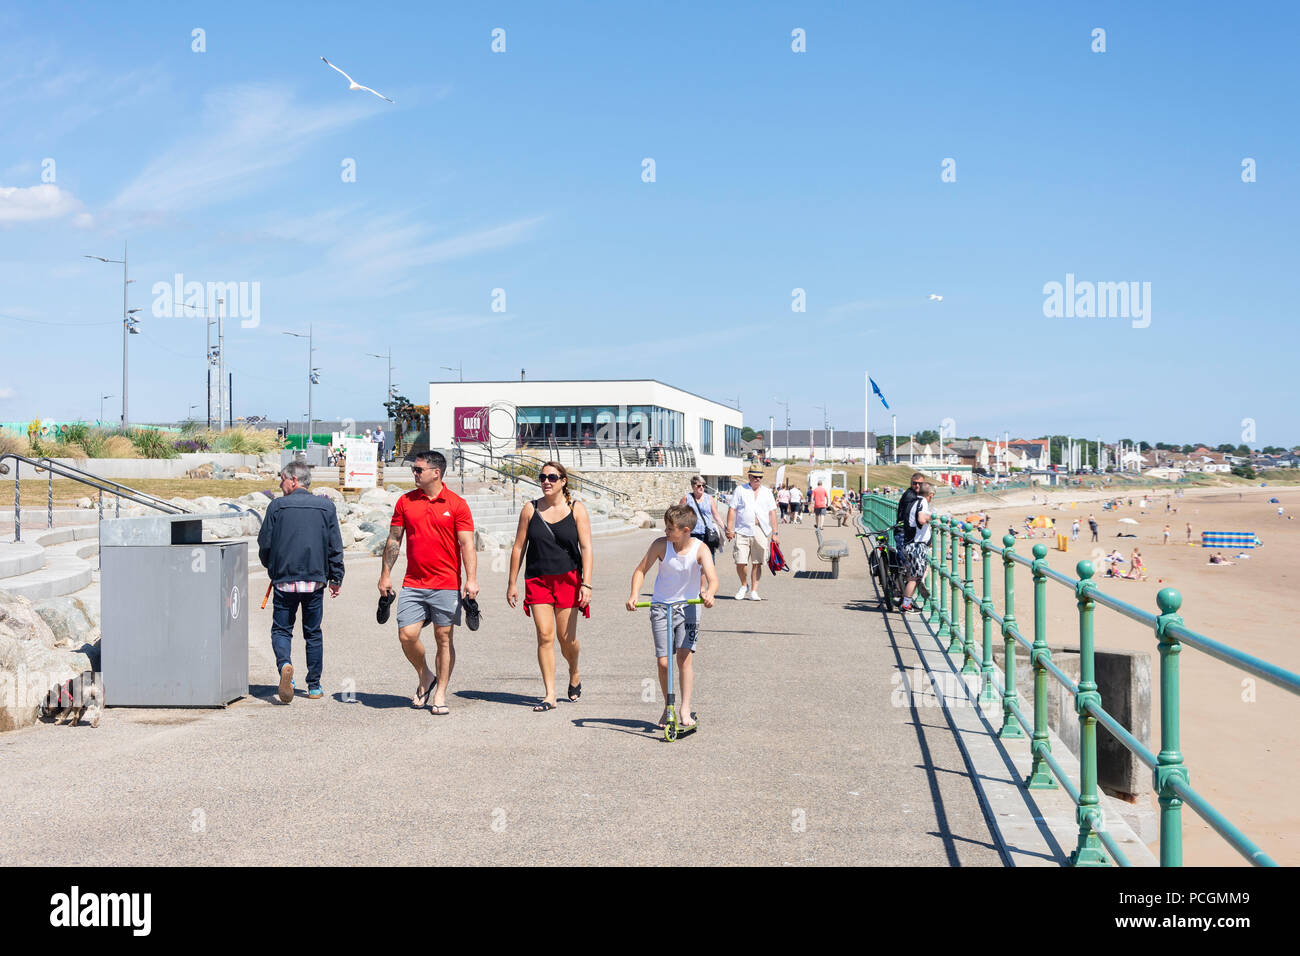 Seaburn Beach iand promenade, Seaburn, Sunderland, Tyne and Wear, England, United Kingdom - Stock Image